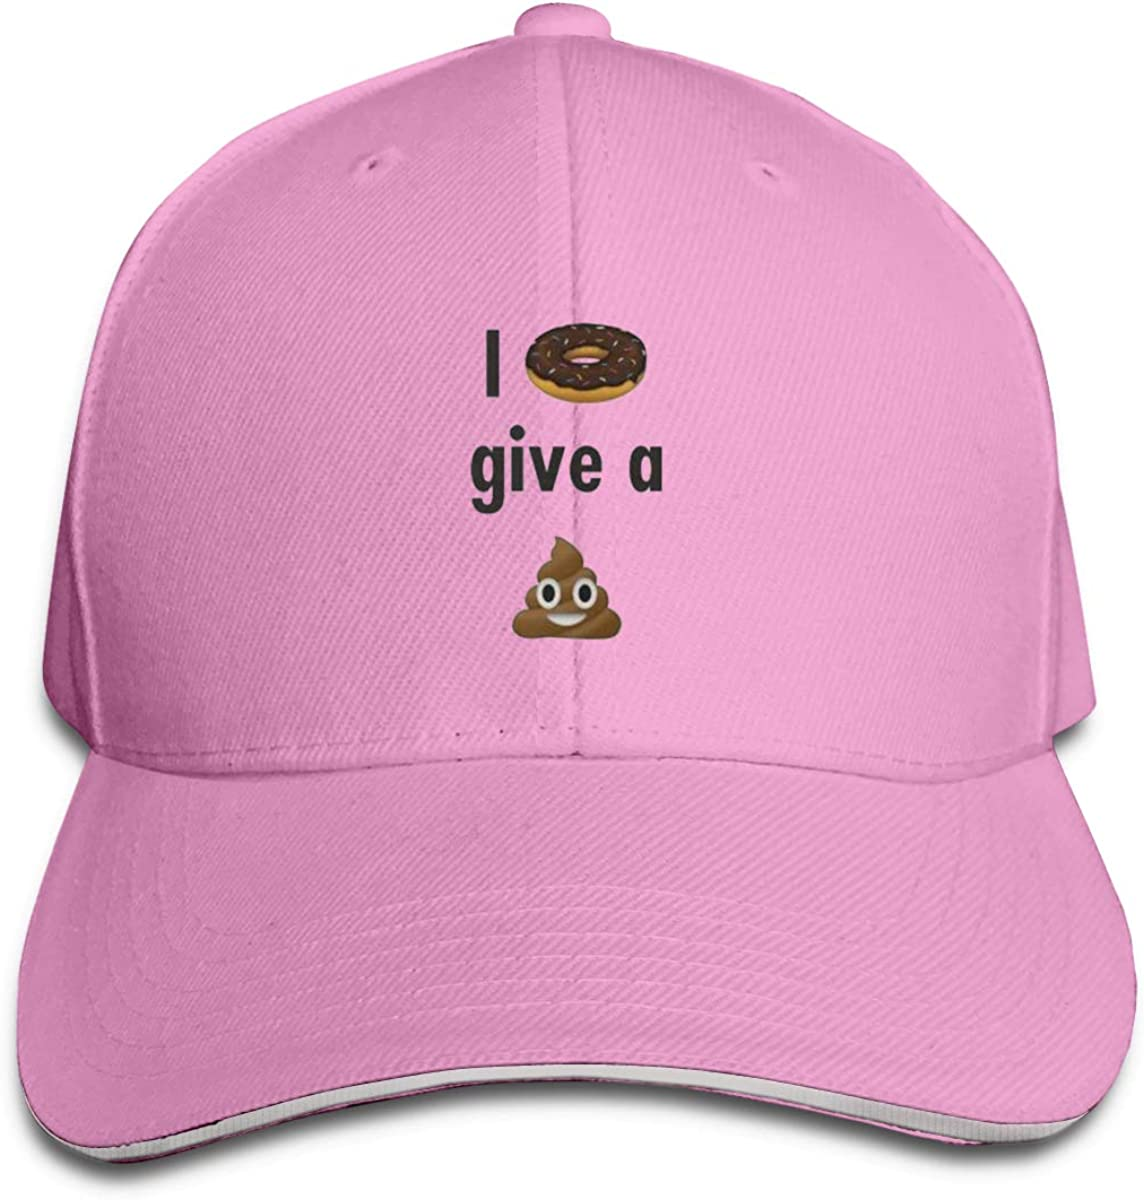 I Donut Give A Sht Poop Classic Adjustable Cotton Baseball Caps Trucker Driver Hat Outdoor Cap Pink